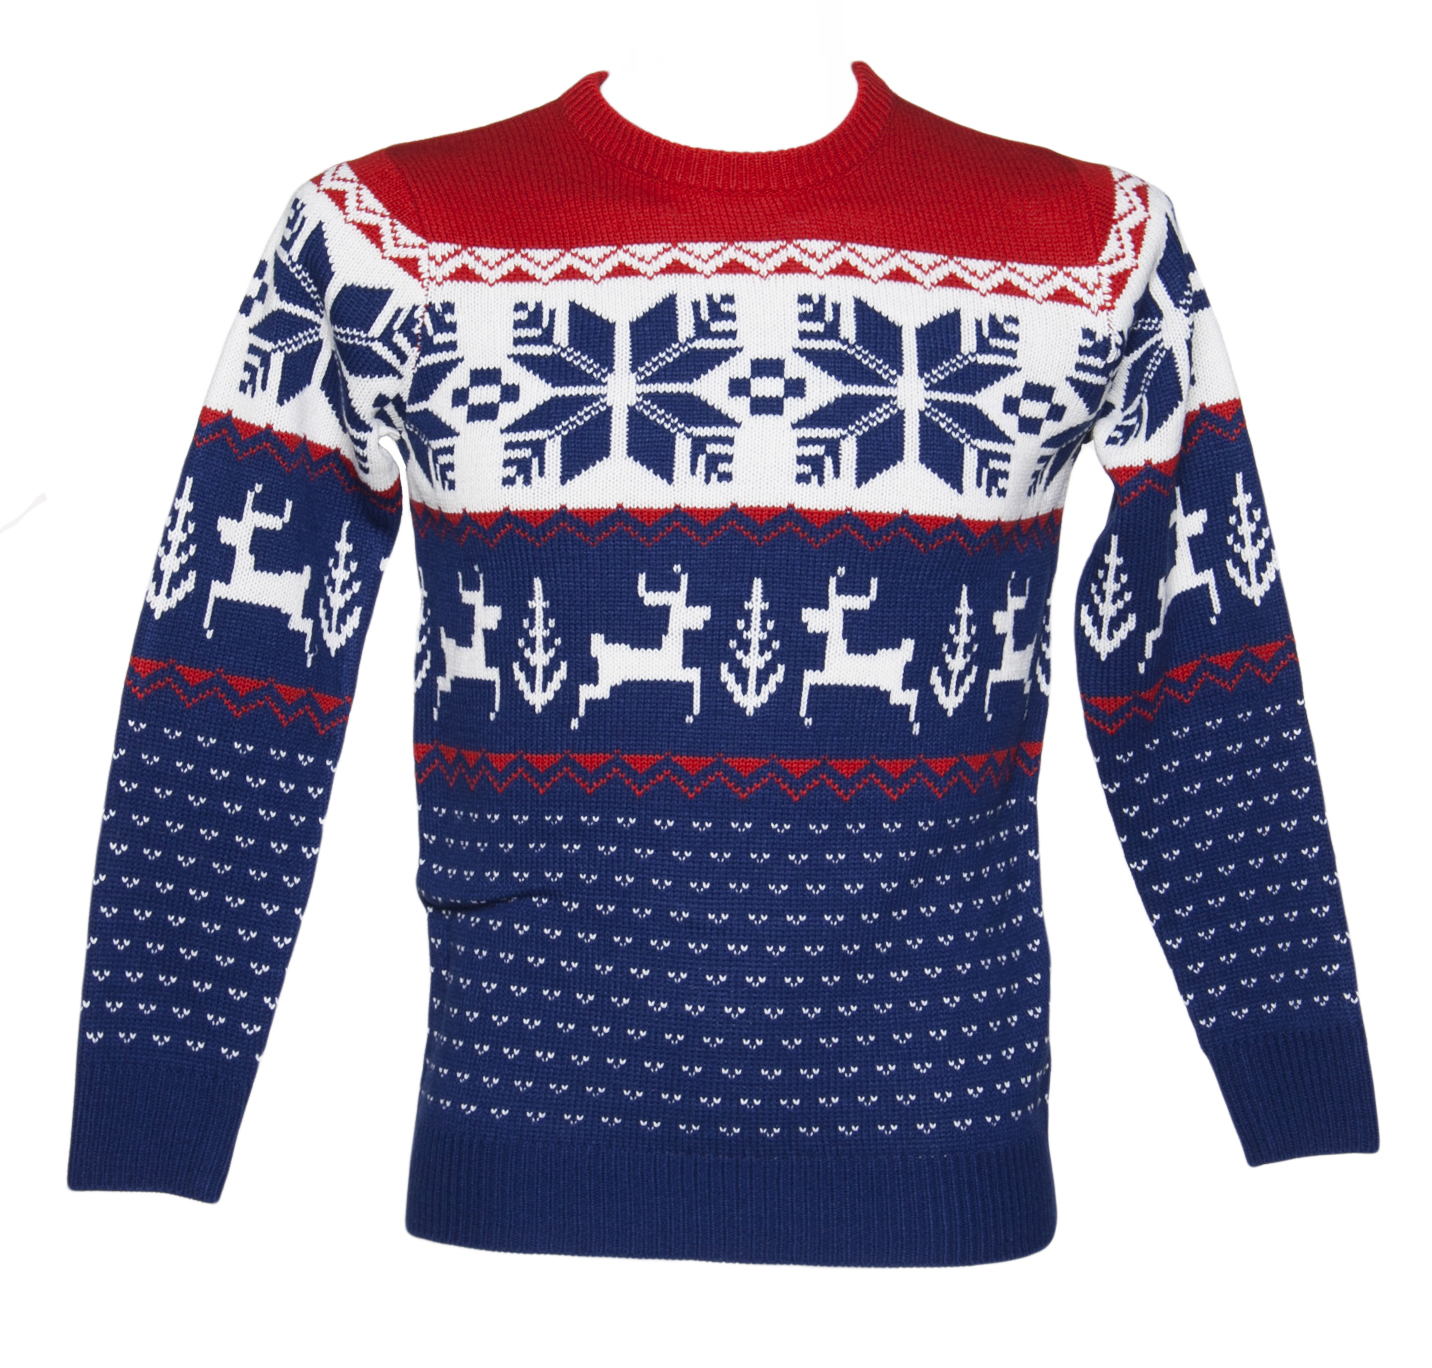 Unisex Blue and Red Wonderland Knitted Christmas